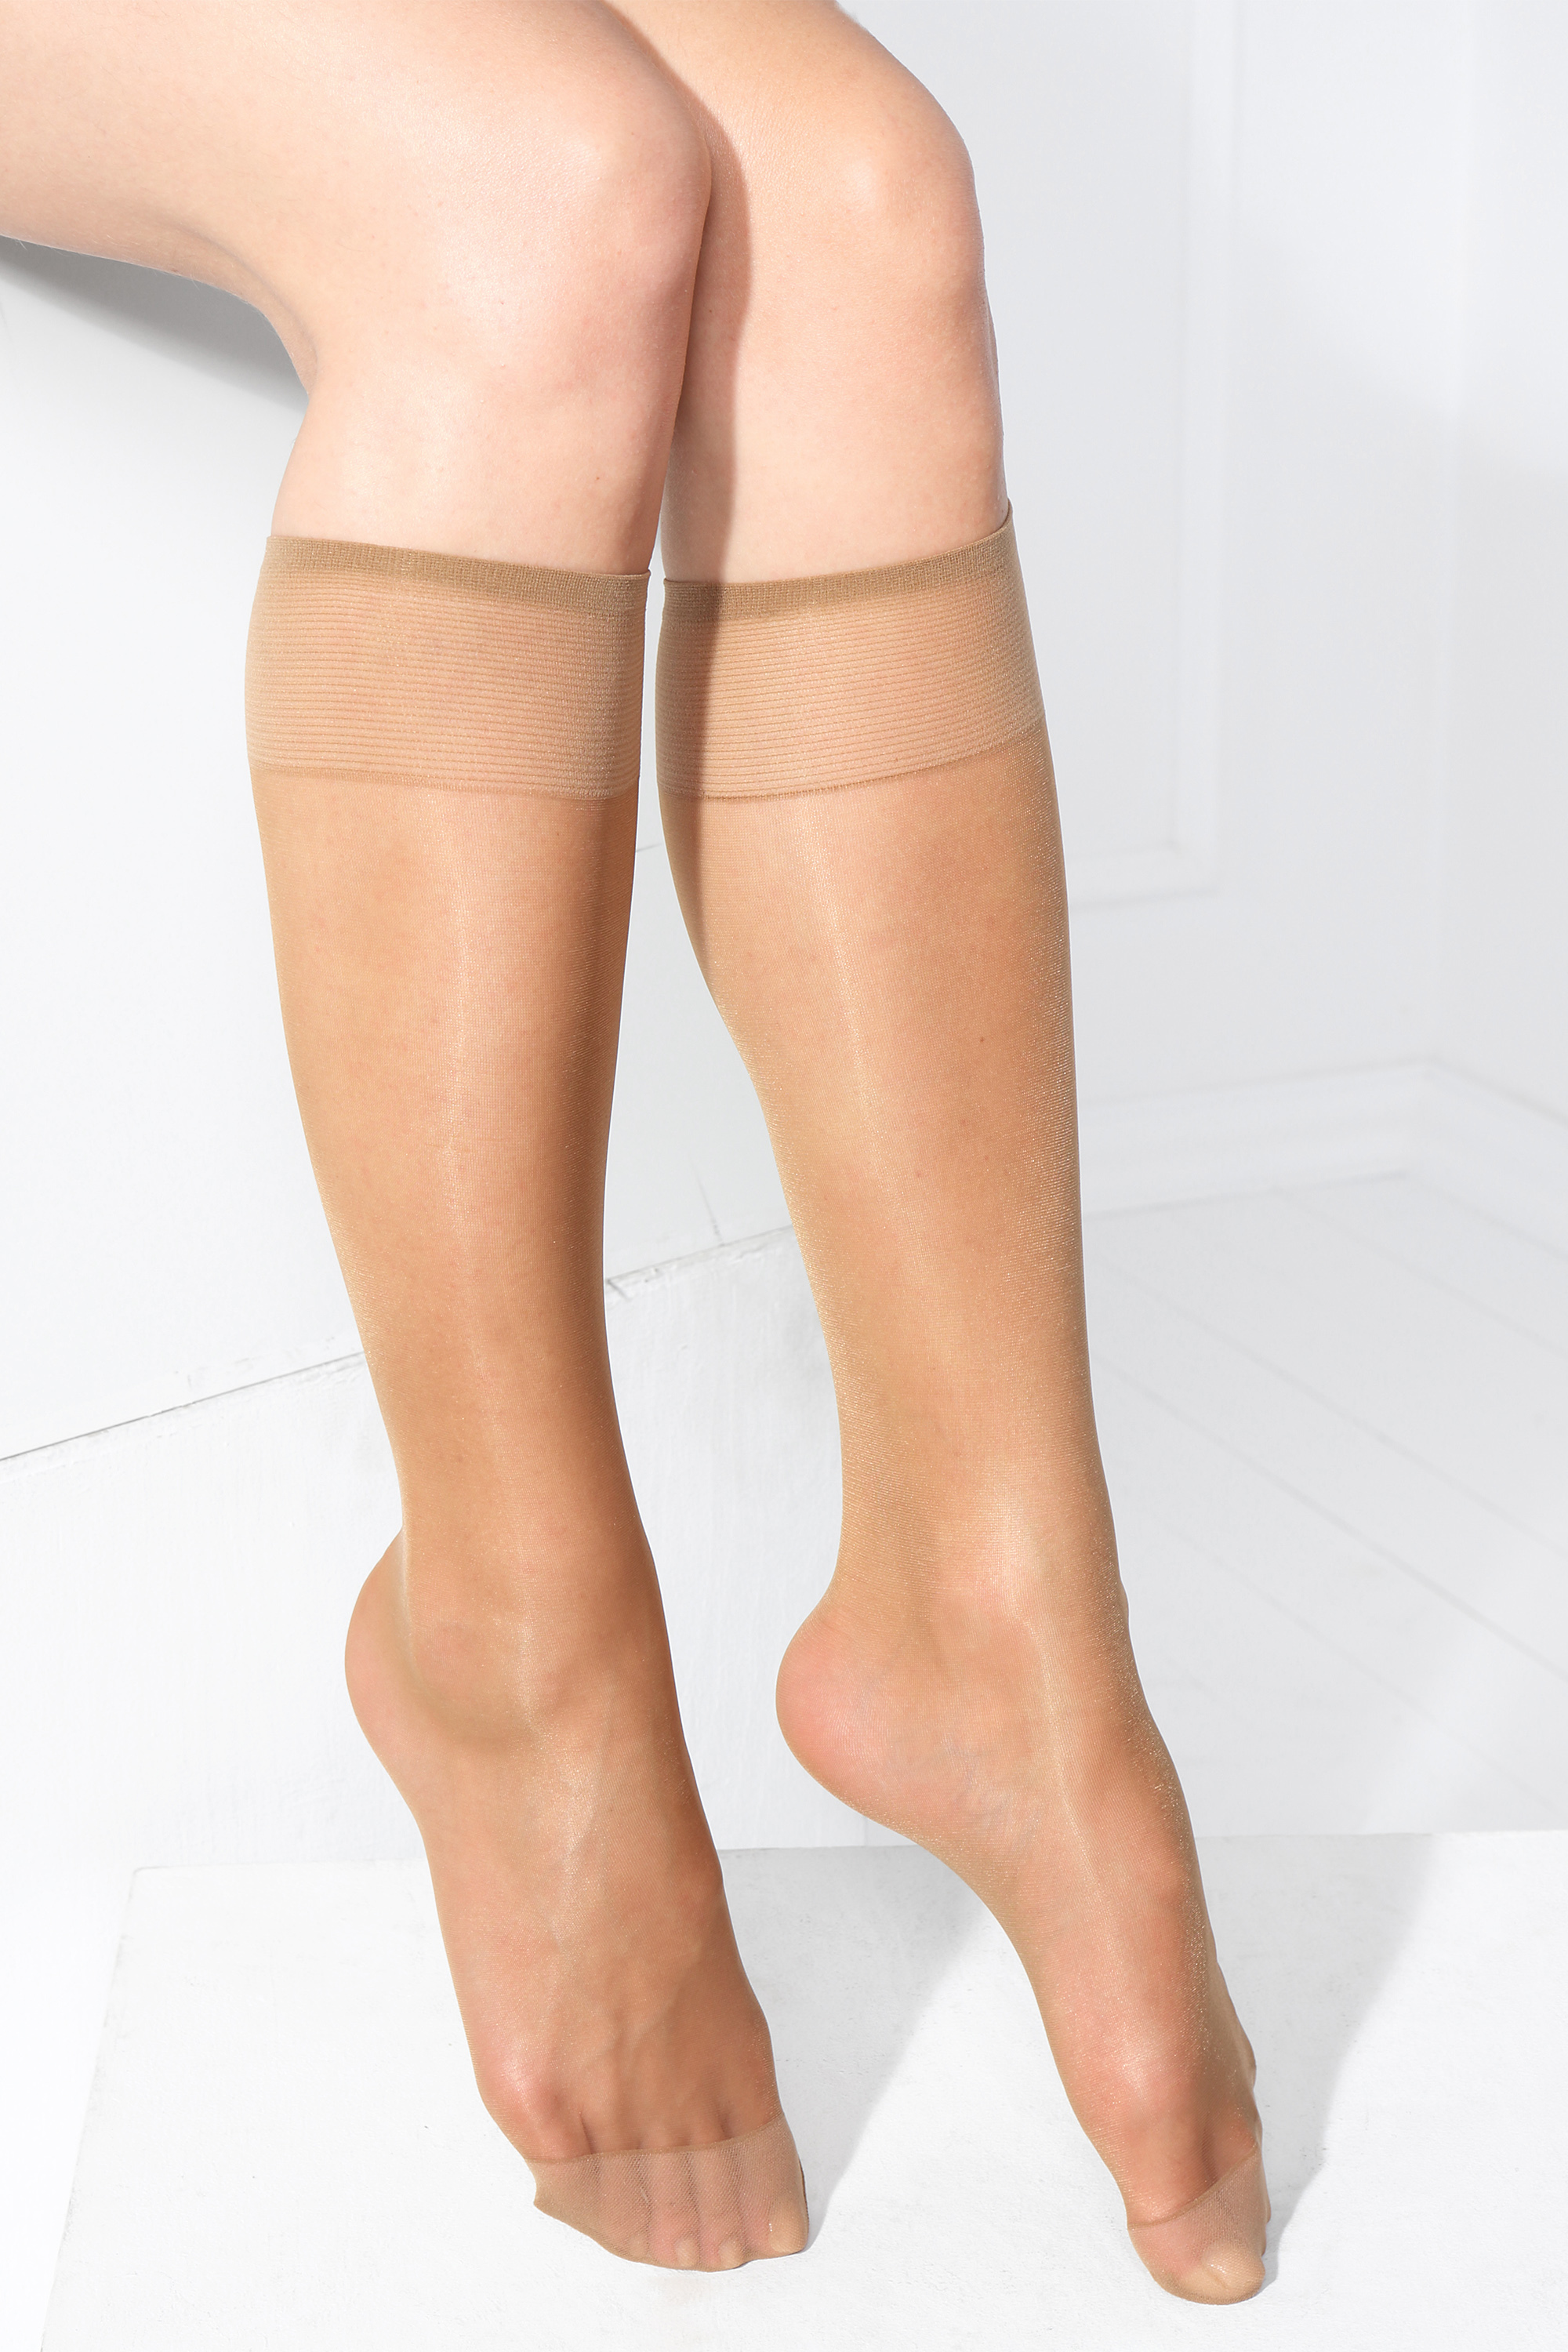 Smart Tights 30DEN knee highs